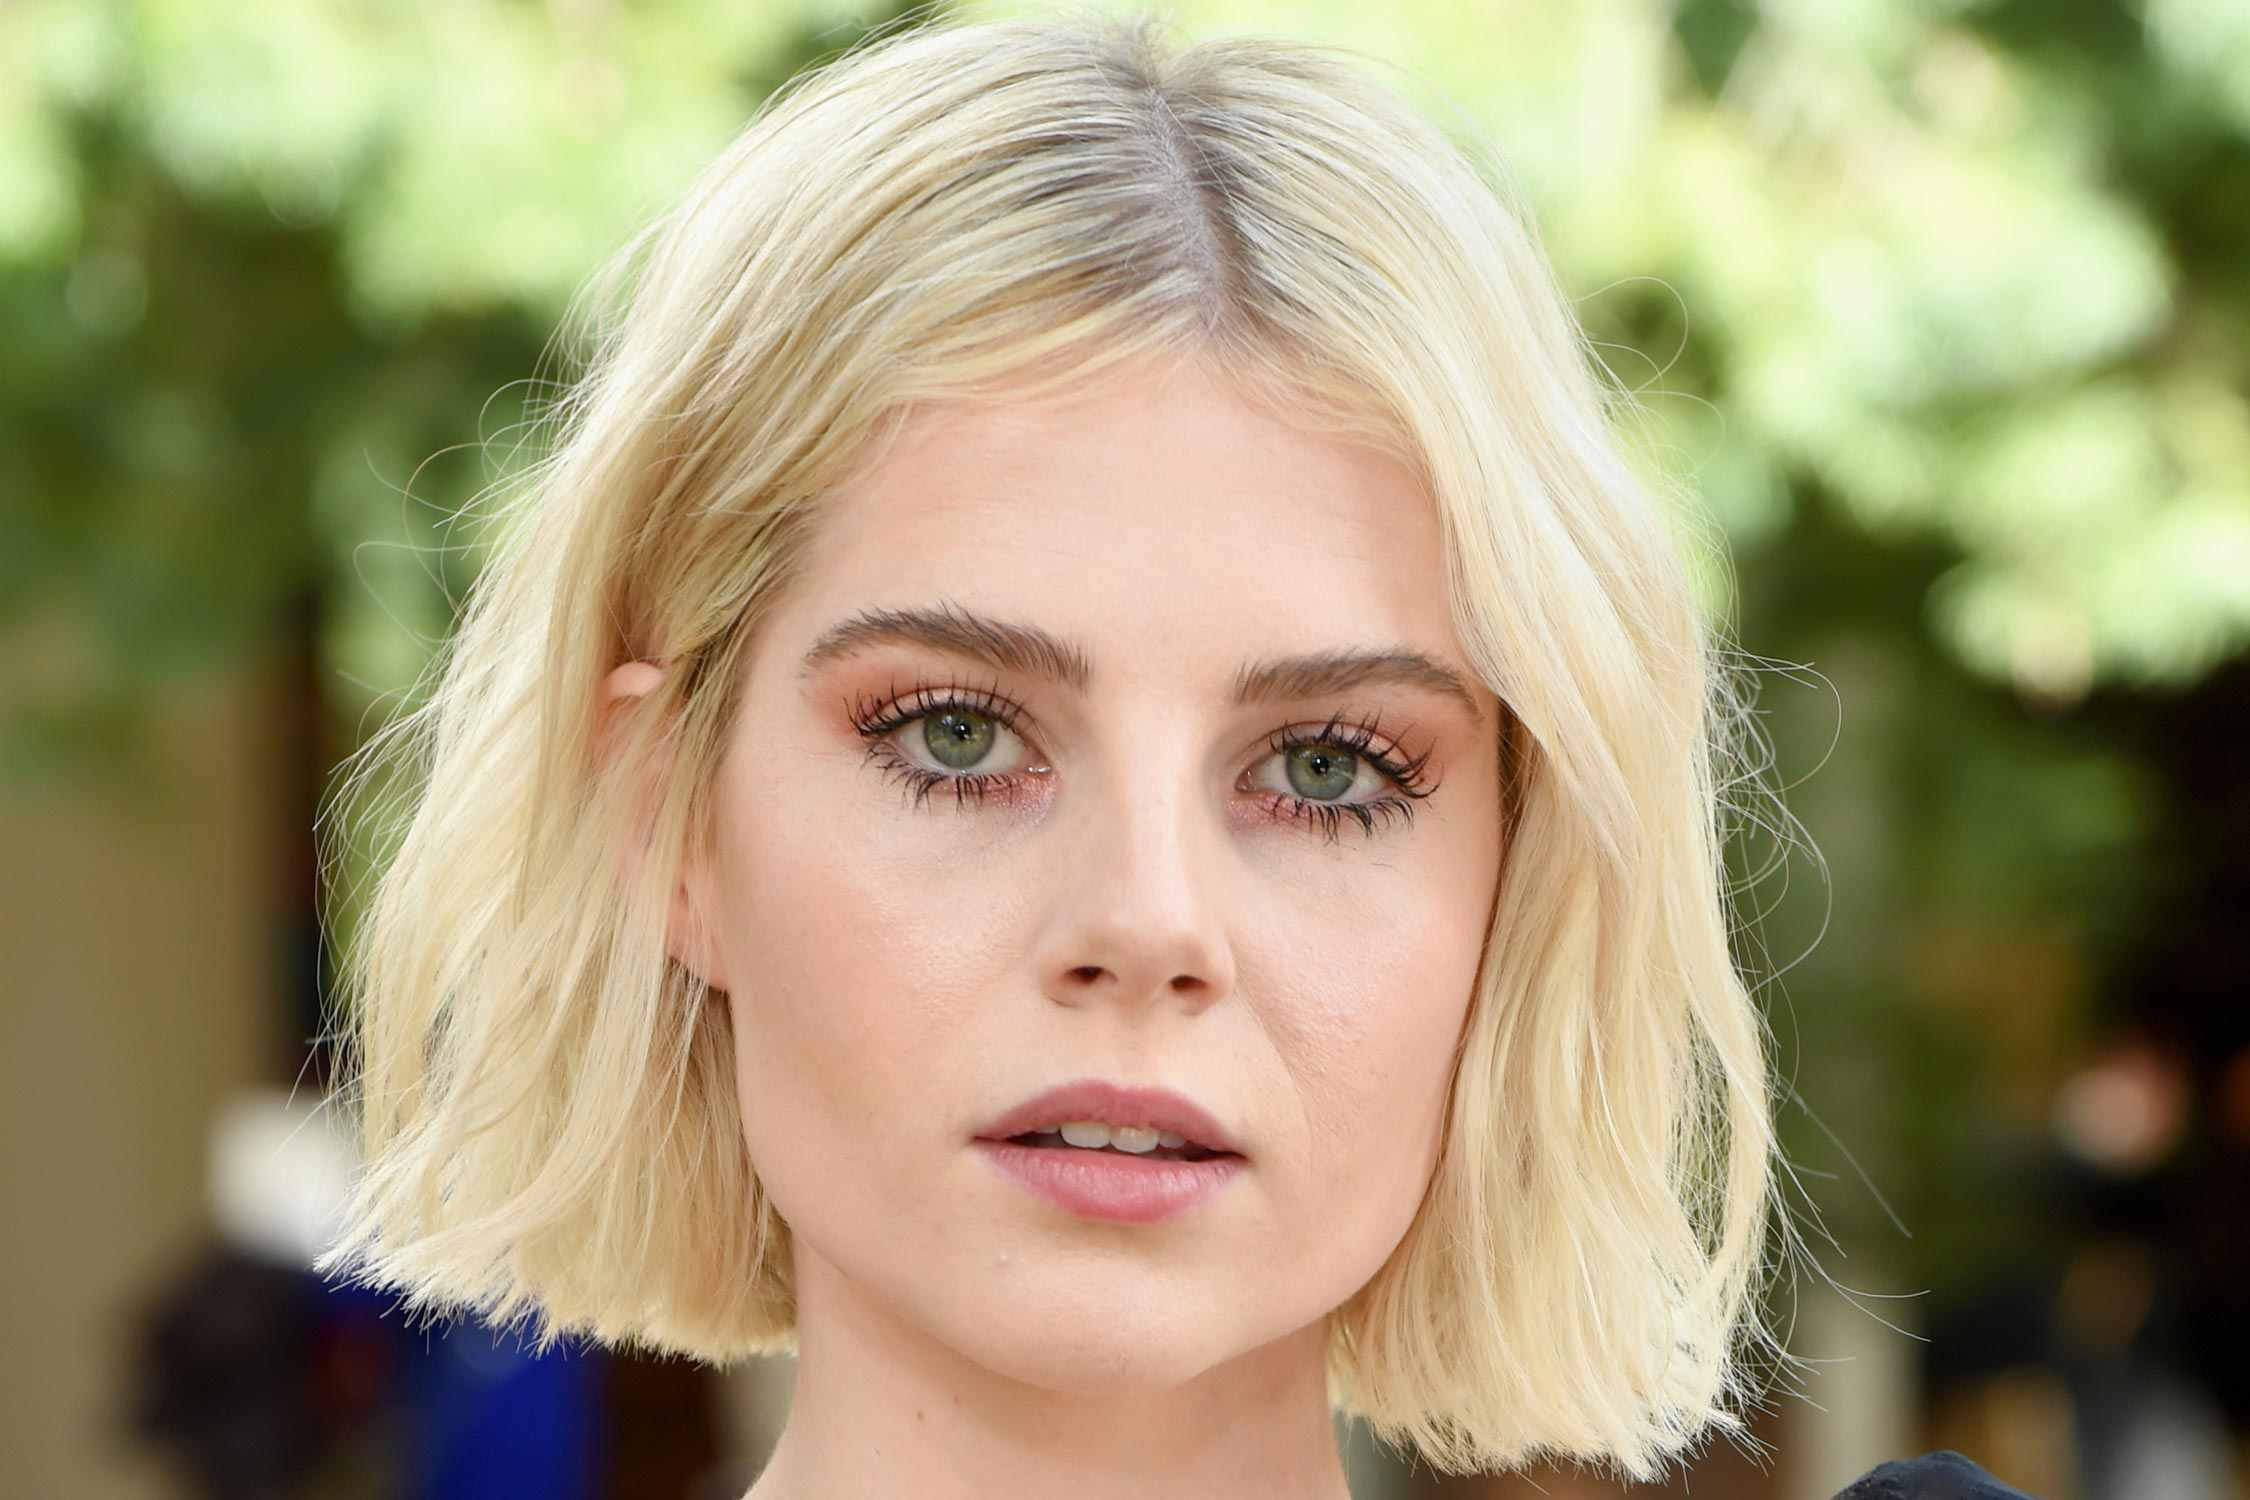 How To Tell If You Would Look Good In Short Hair